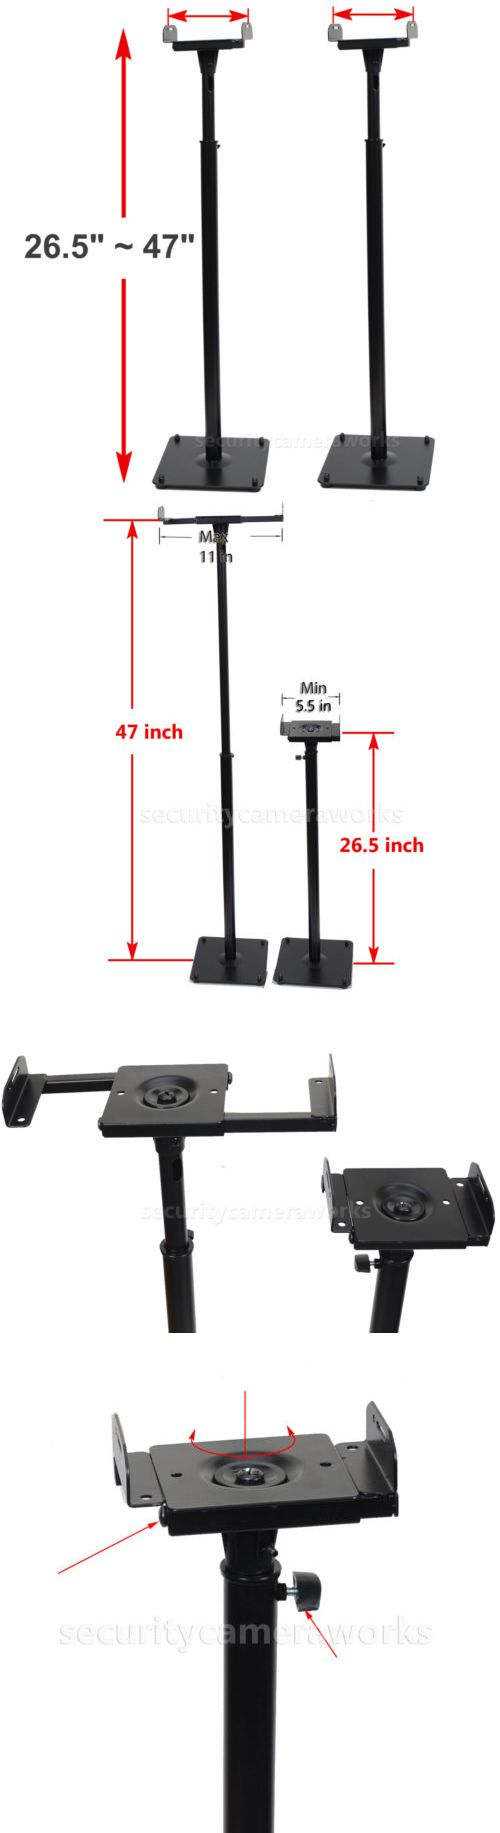 Speaker Mounts and Stands: 2 Surround Sound Bookshelf Floor Speaker Stands Side Clamp Heavy Duty Mounts Bjr -> BUY IT NOW ONLY: $48.7 on eBay!